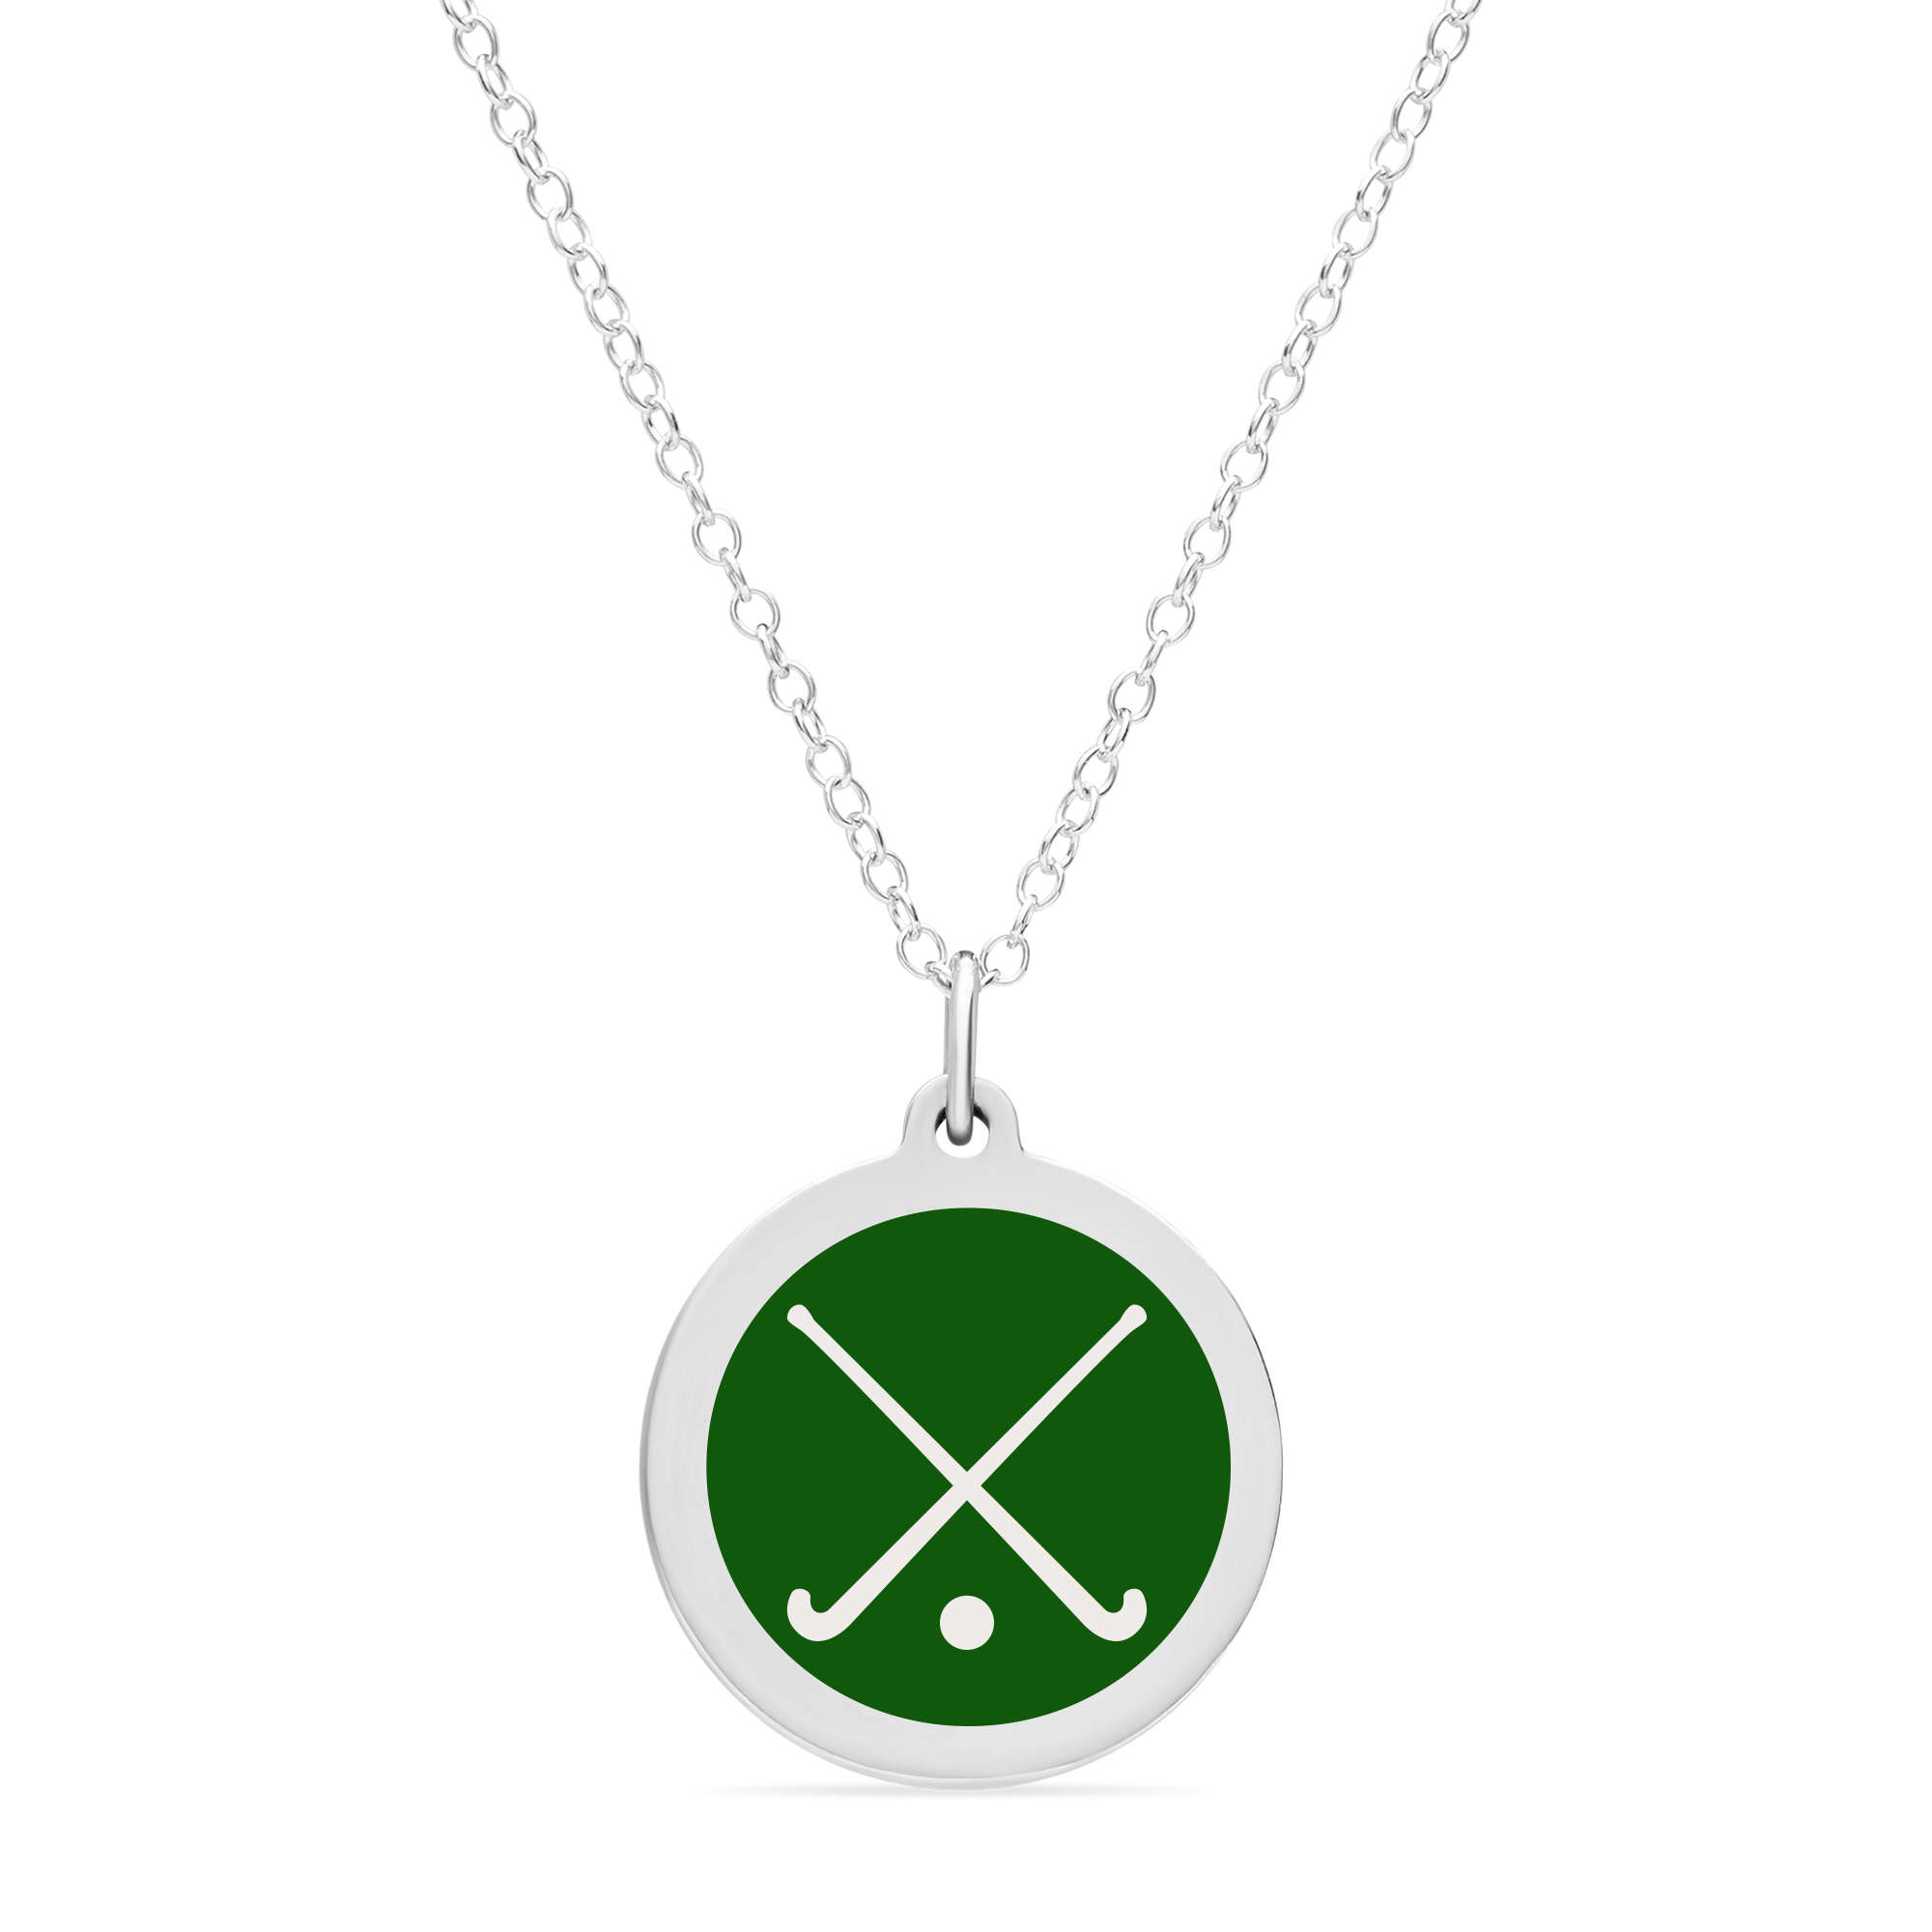 ORIGINAL FIELD HOCKEY CHARM in sterling silver with rhodium plate